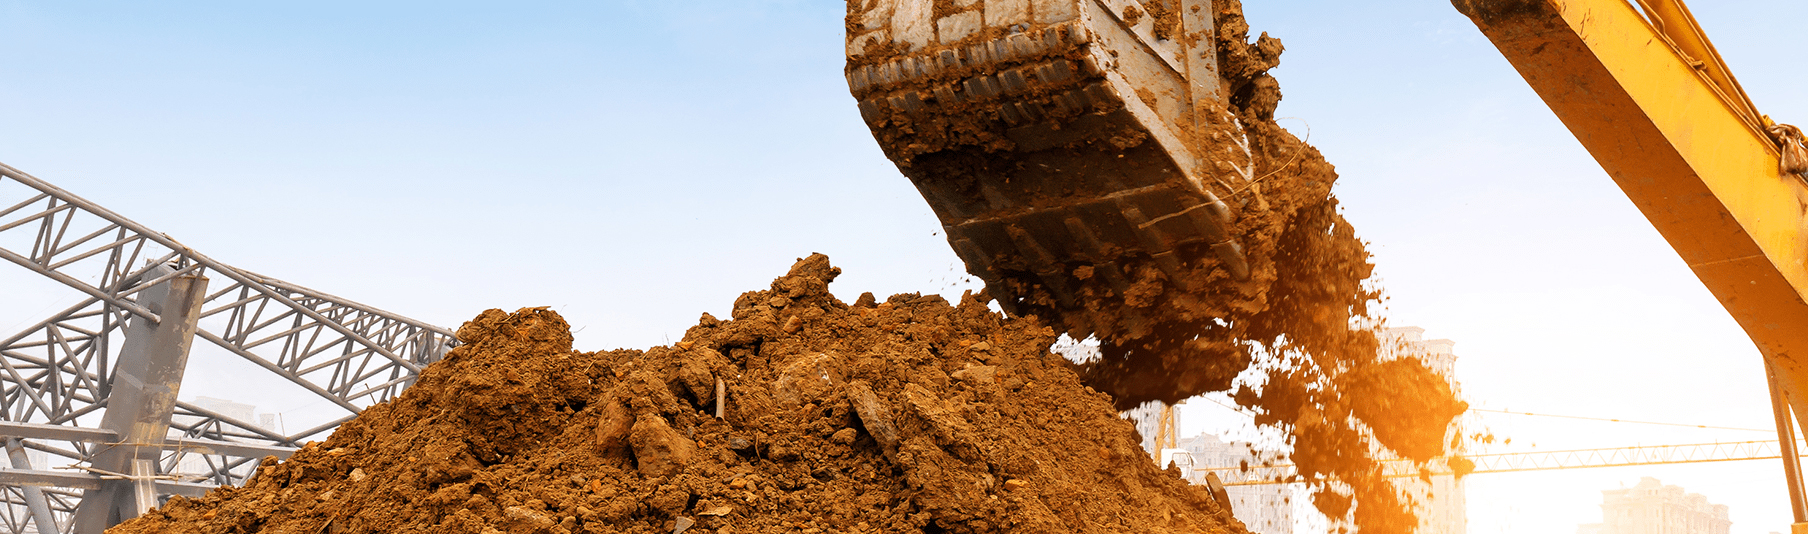 Construction Insurance: A large pile of dirt being scooped up by a bulldozer